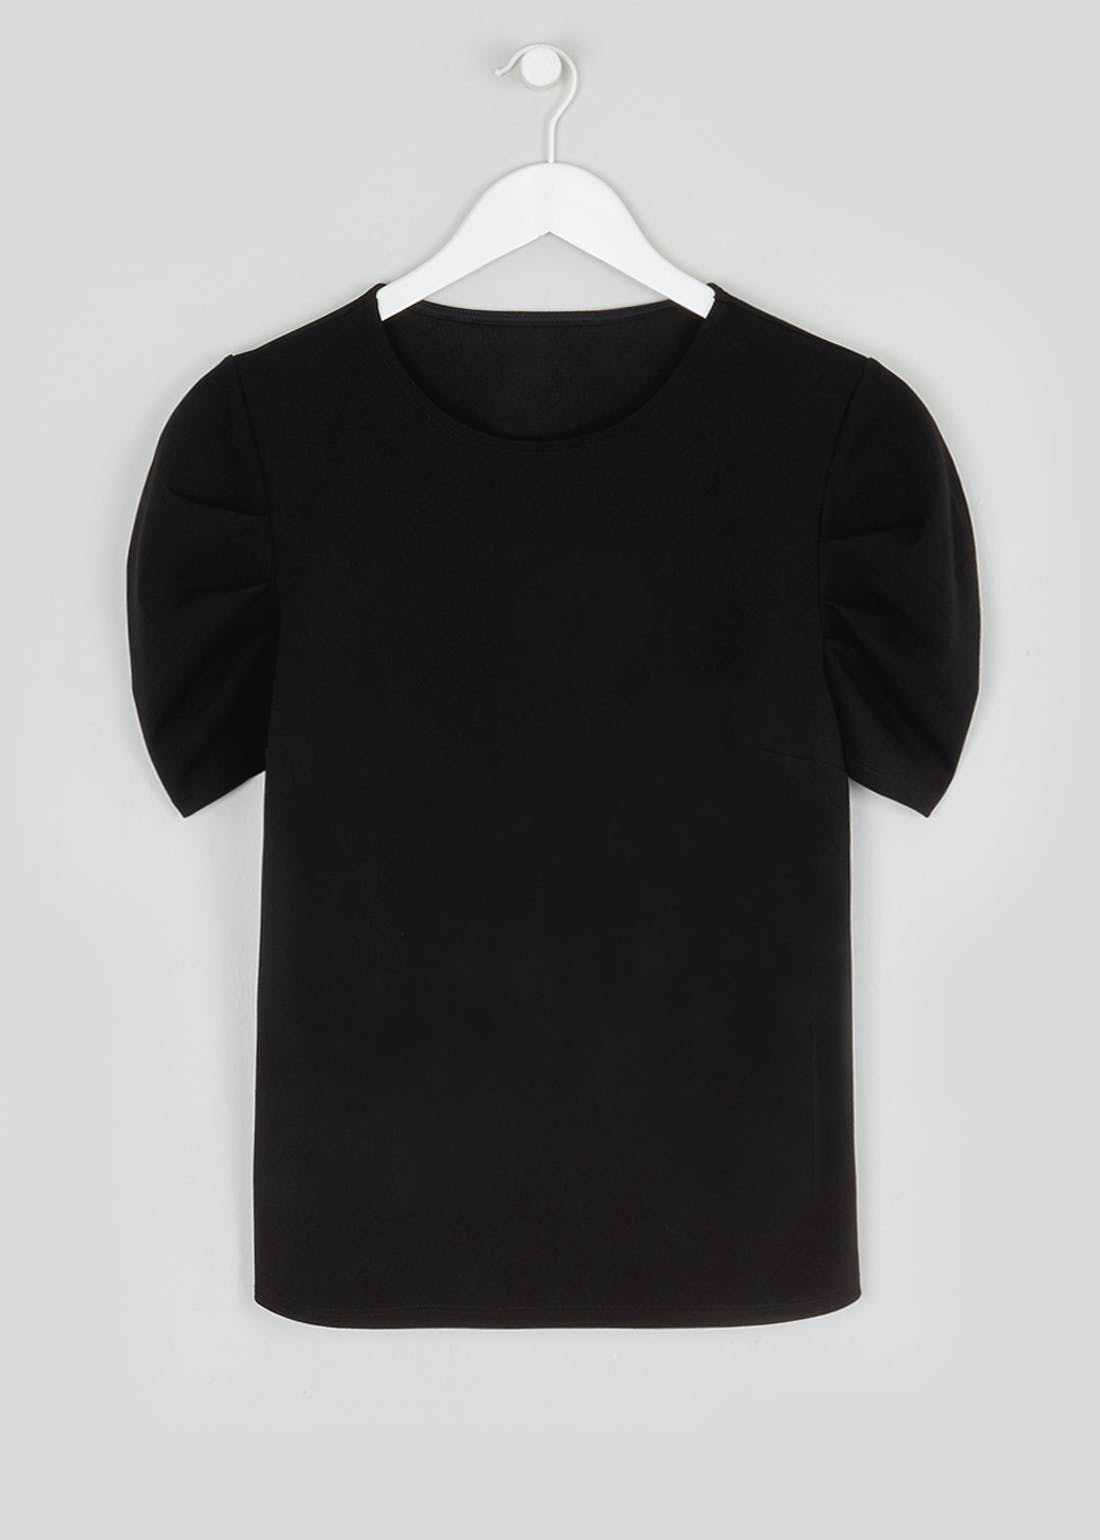 Textured Gathered Sleeve Top